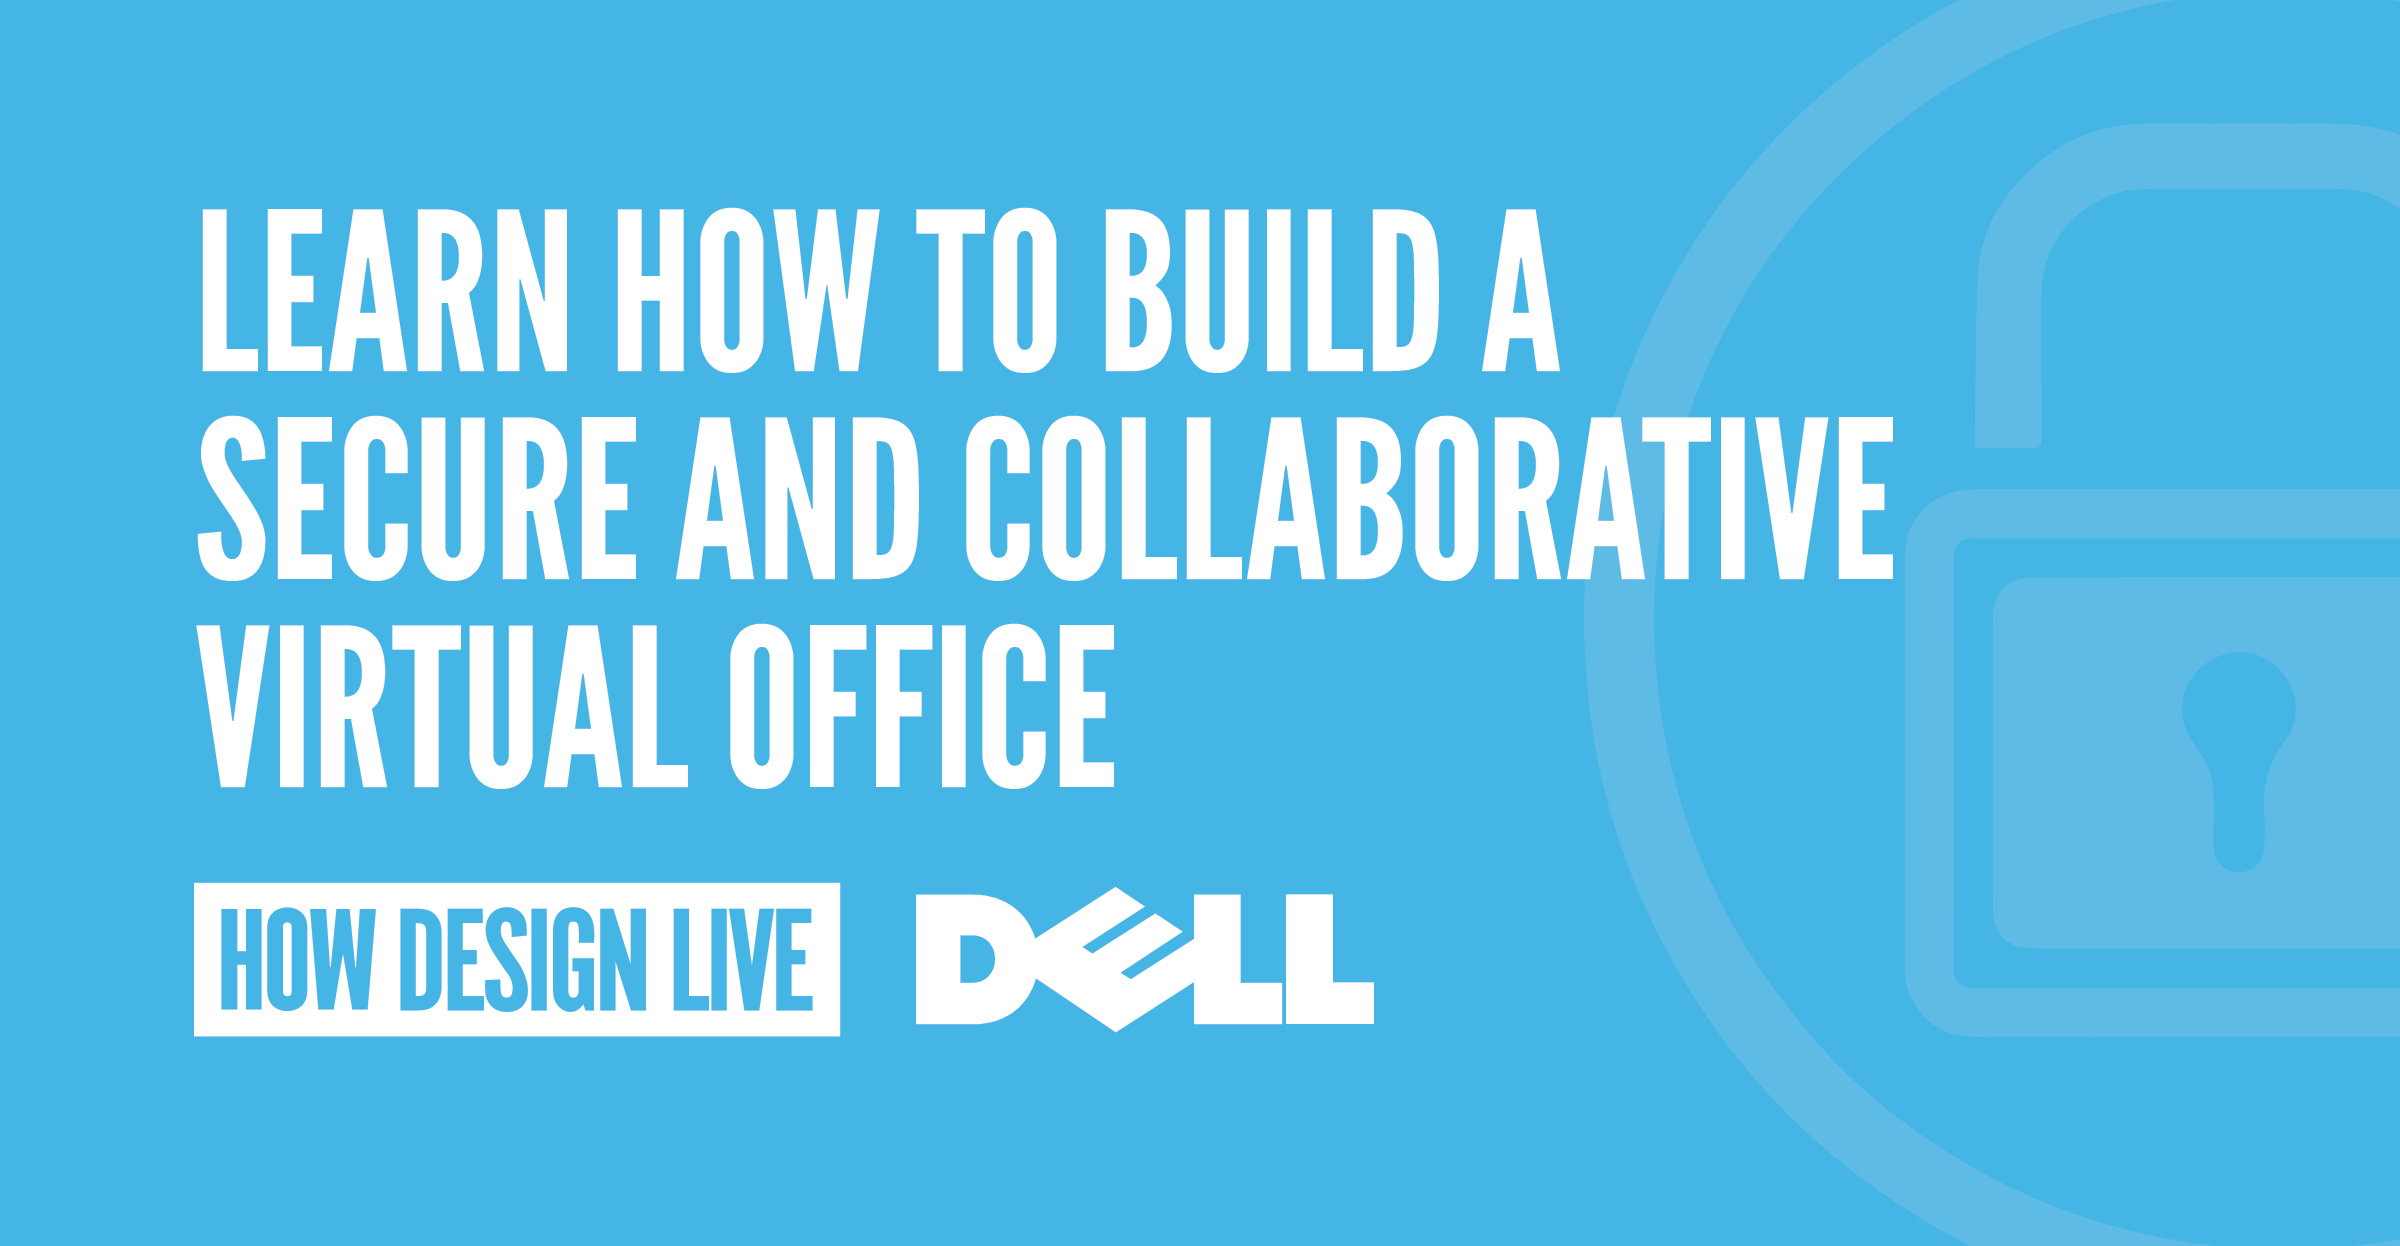 Dell + HOW Design Live White Paper